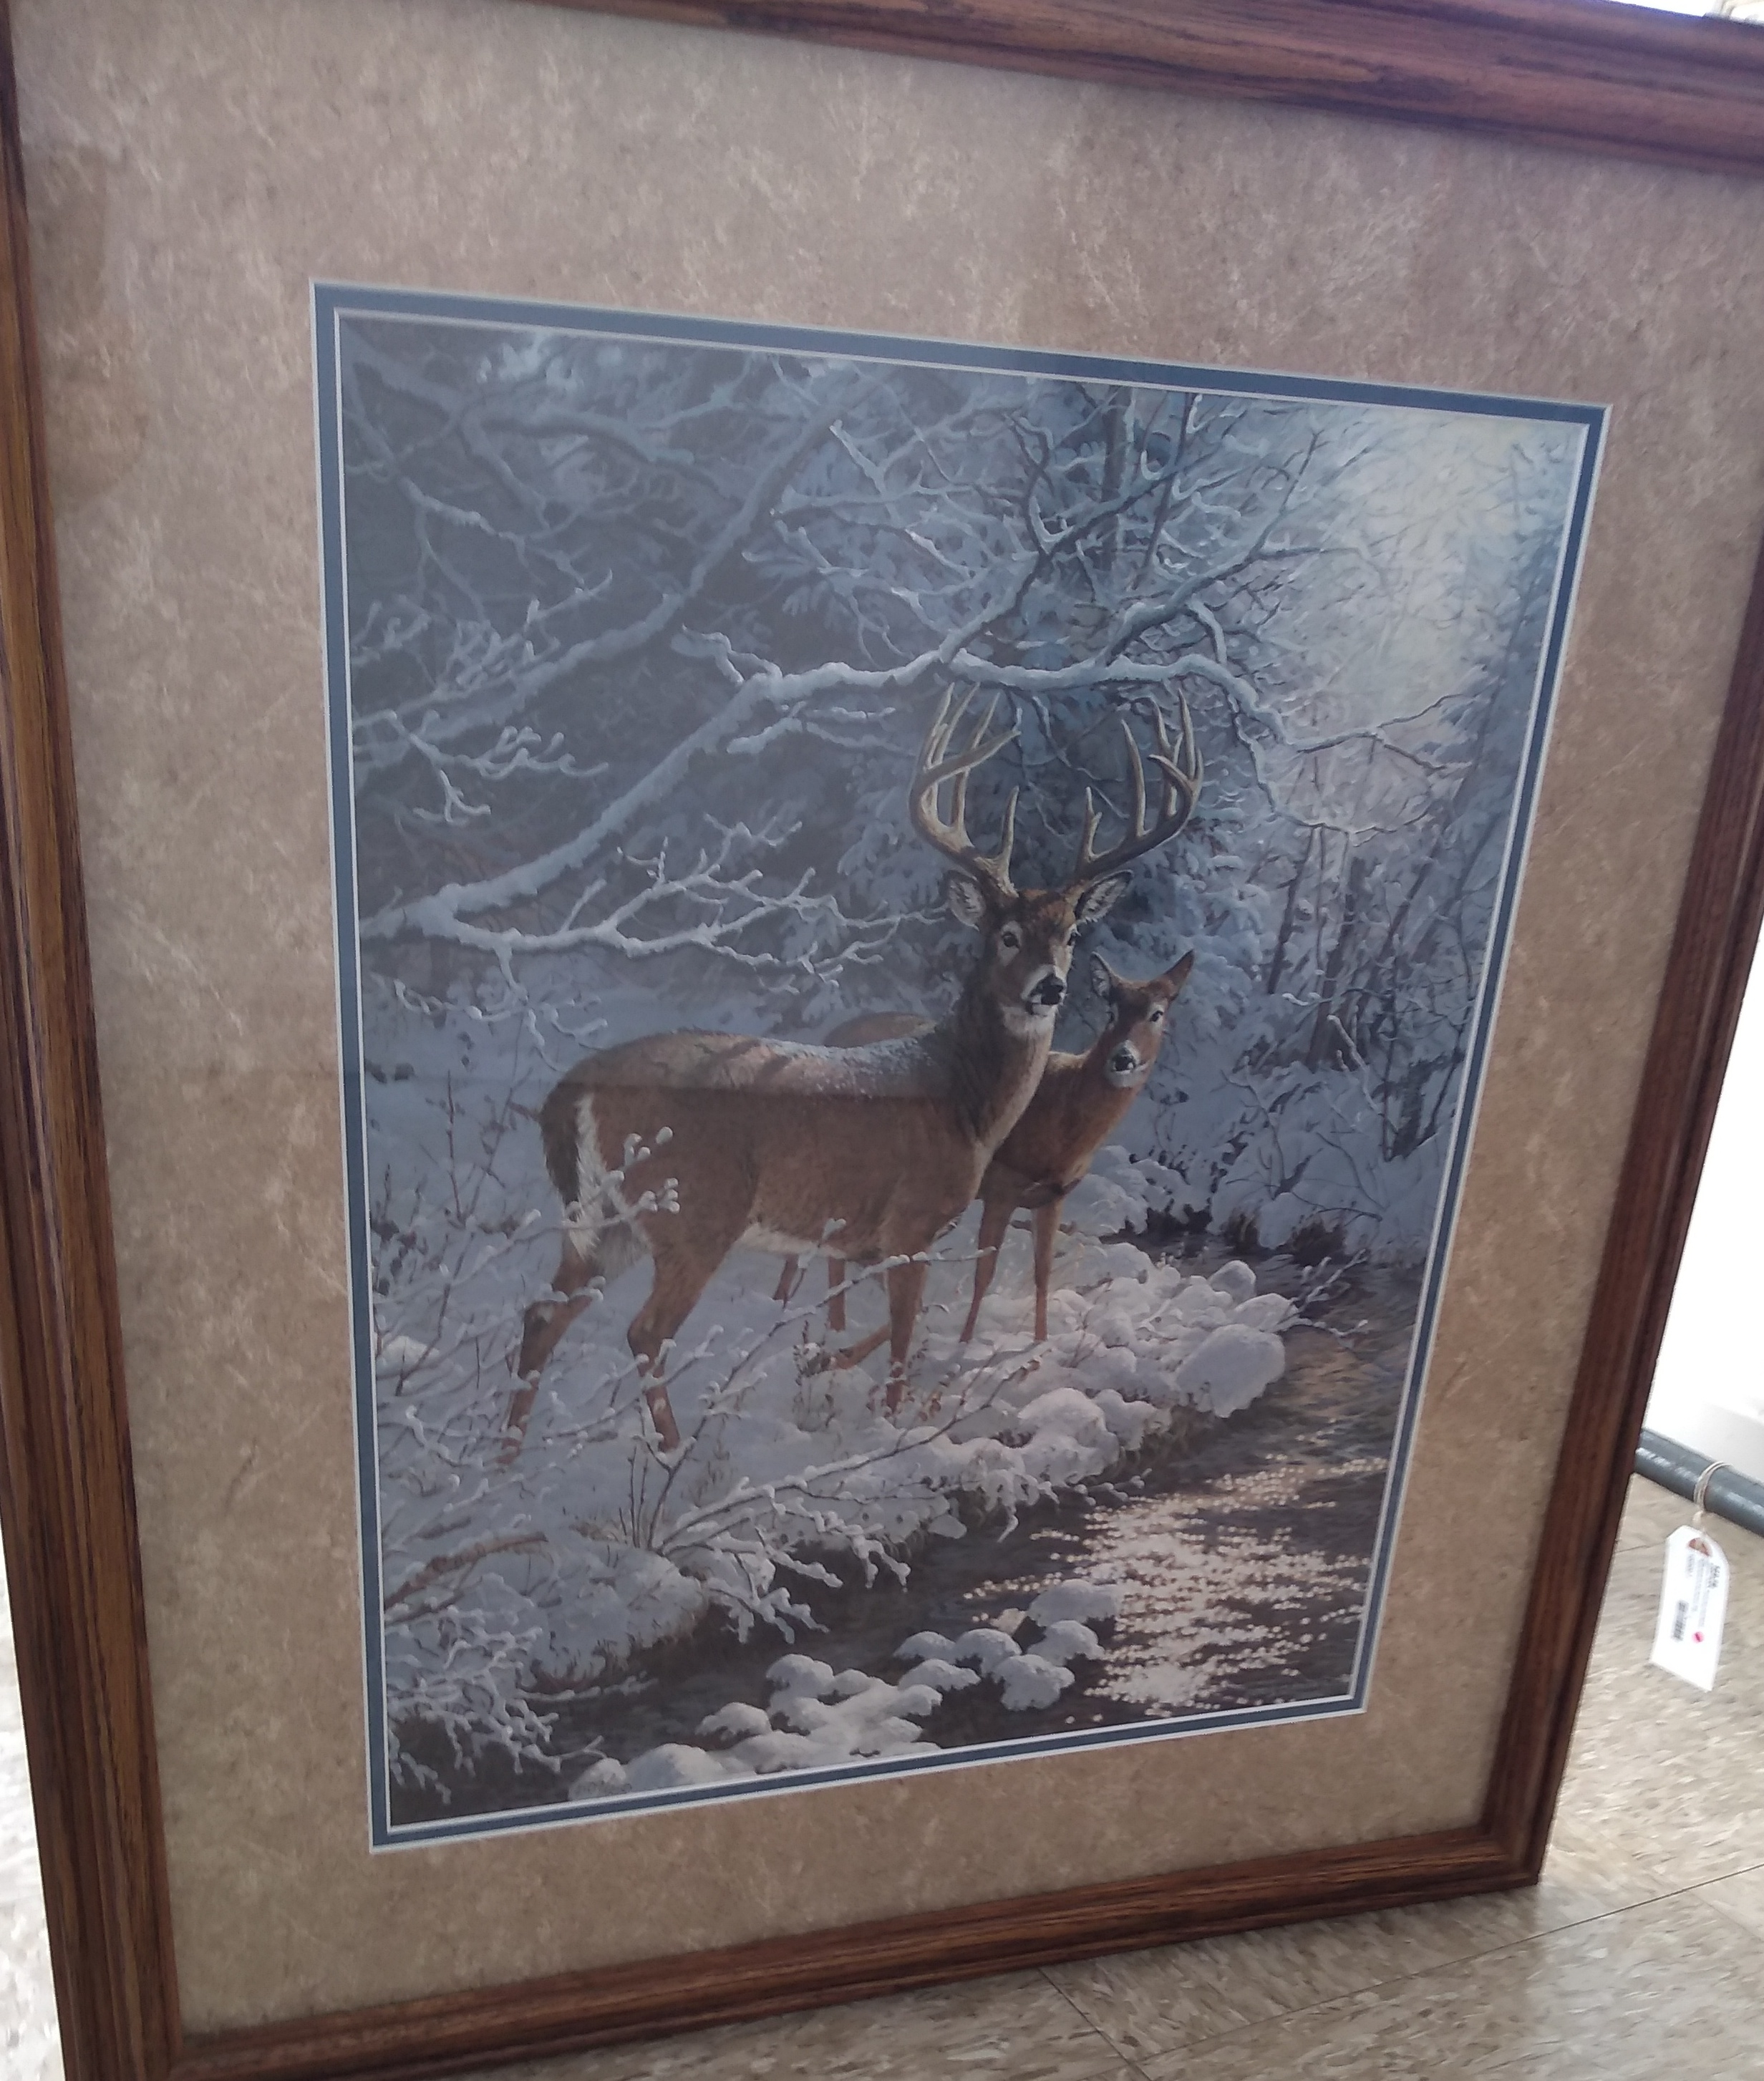 PAINTING OF DEER IN FRAME